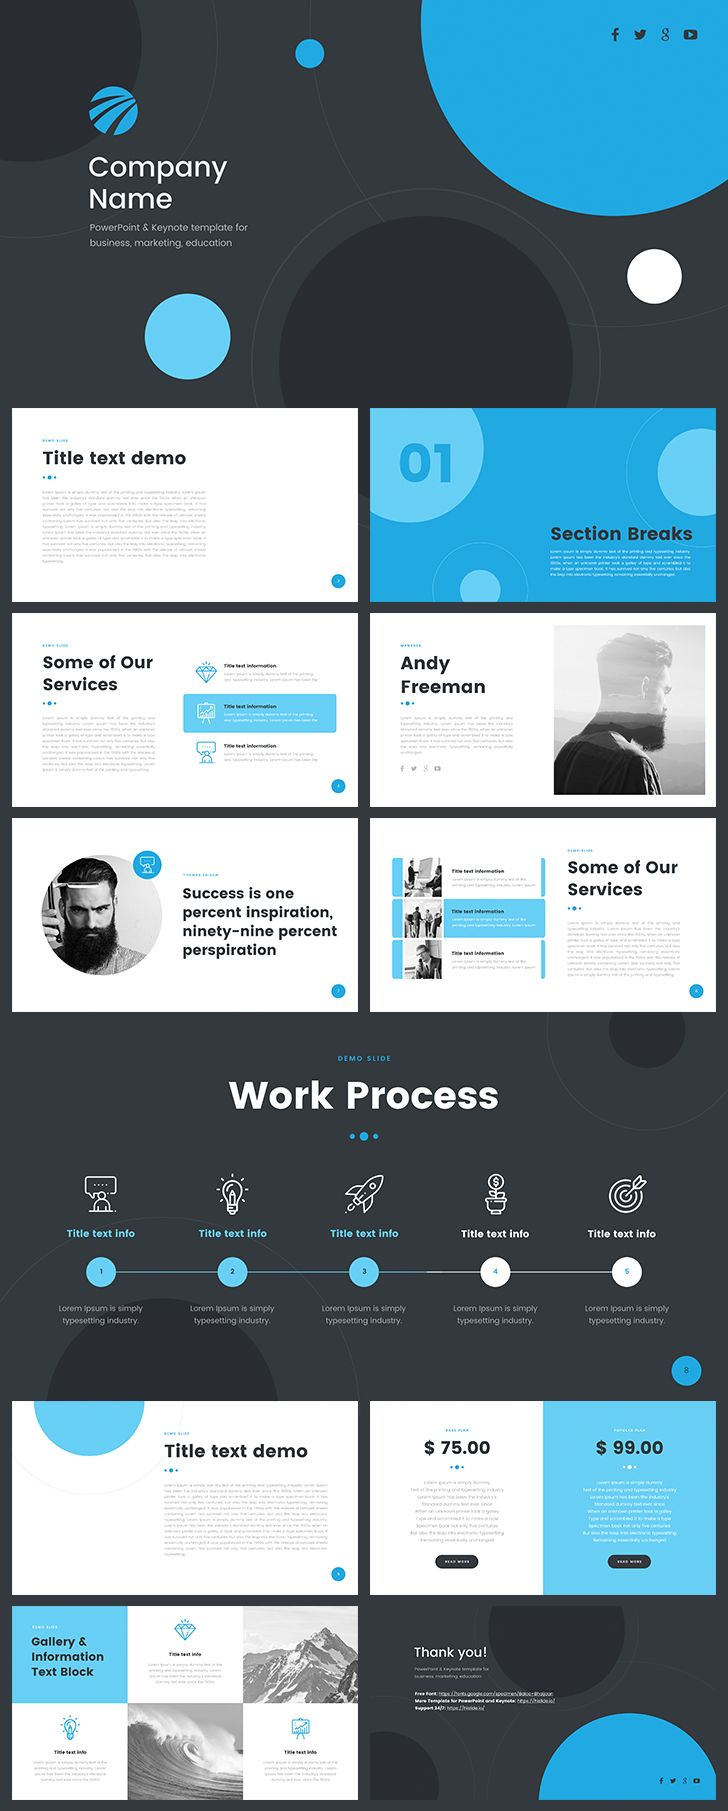 26 best keynote template images on pinterest | keynote template, Presentation templates